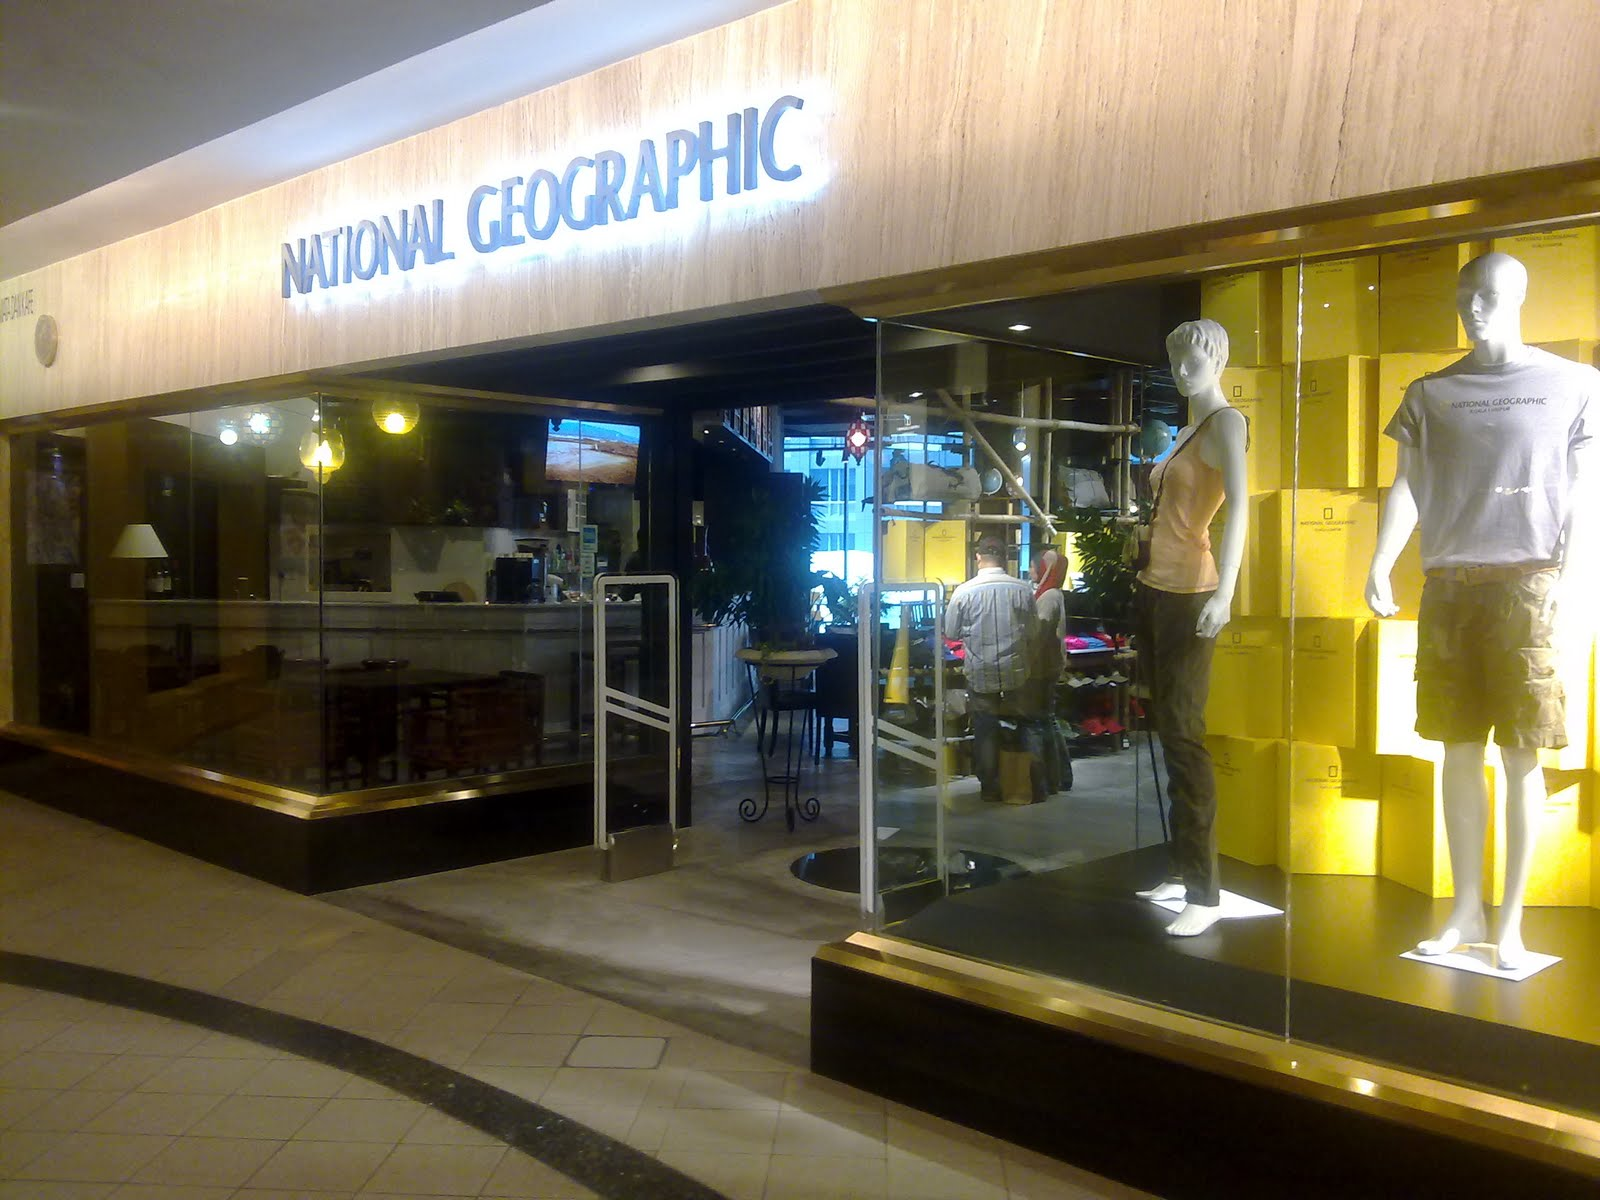 all about indomee: National Geographic Store @ Lot 10